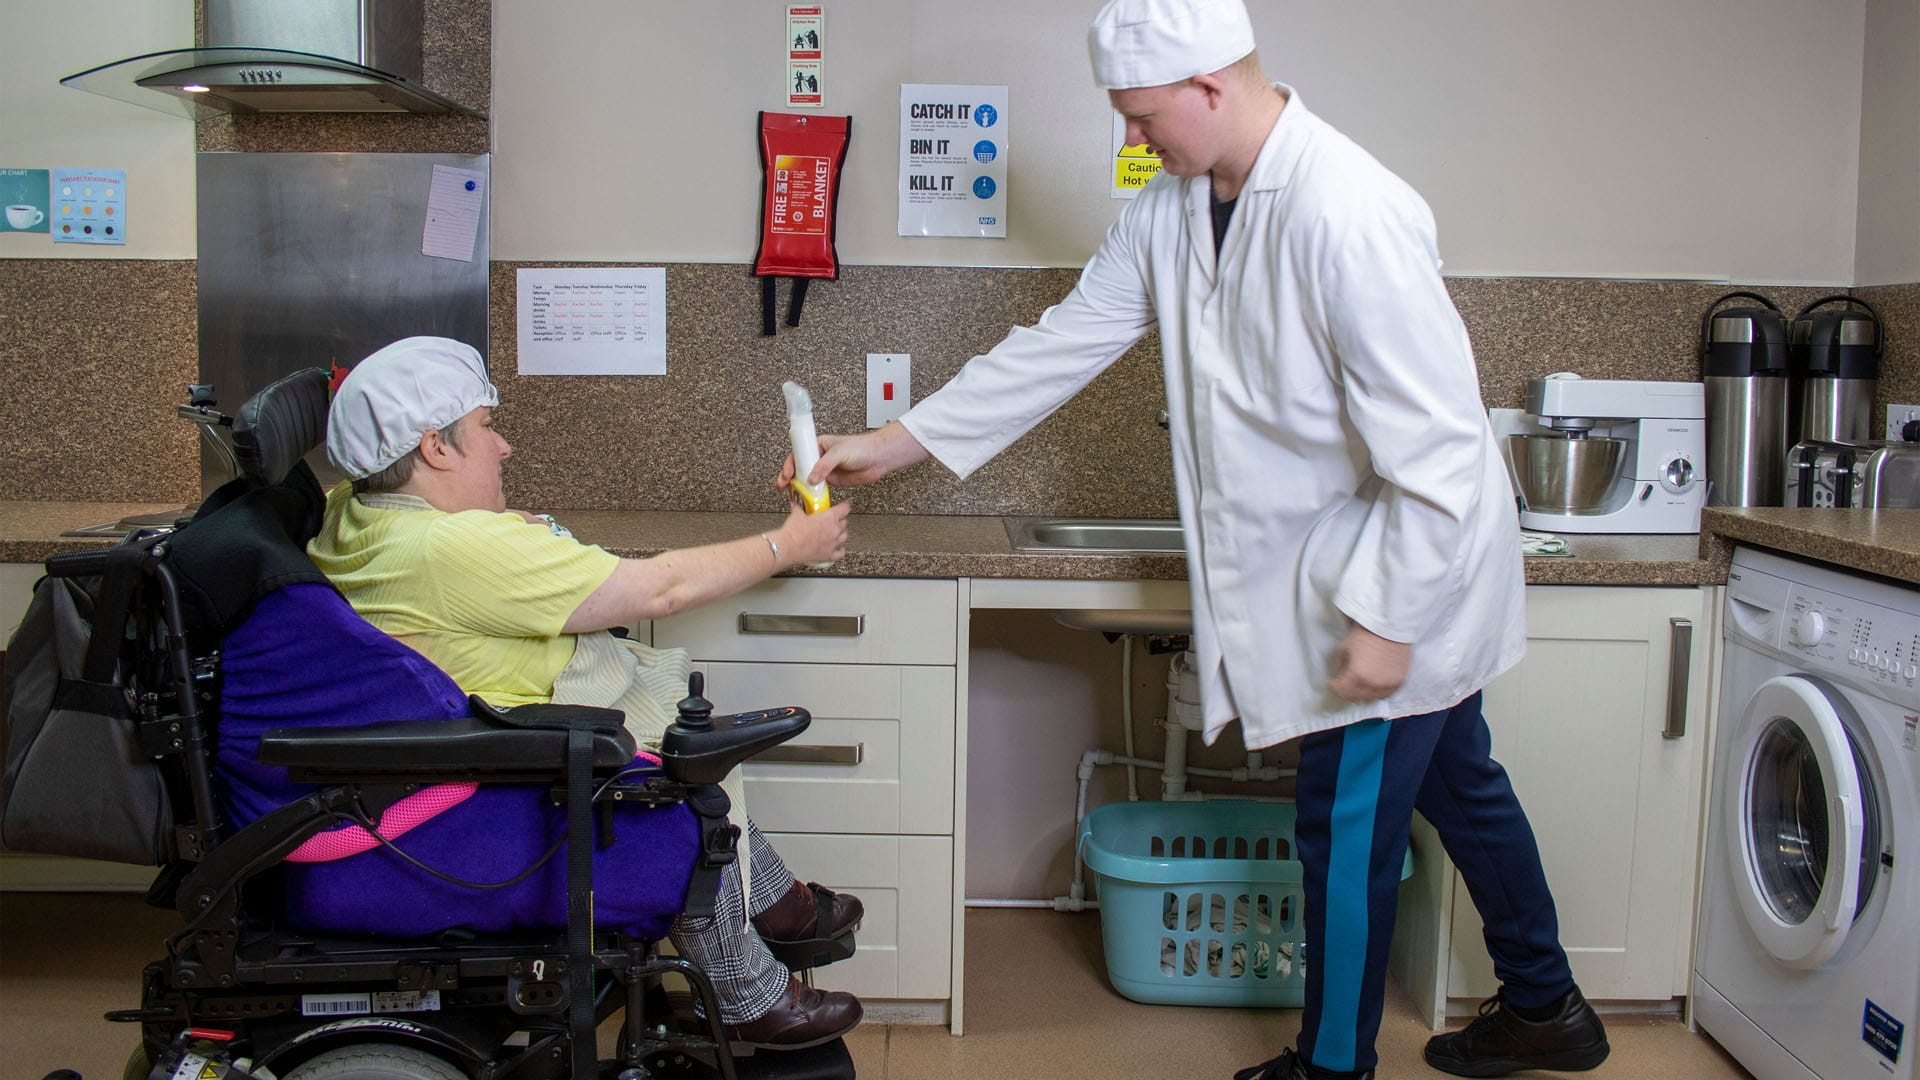 Two services users wearing chef's uniforms helping each other in the Magpies' kitchen